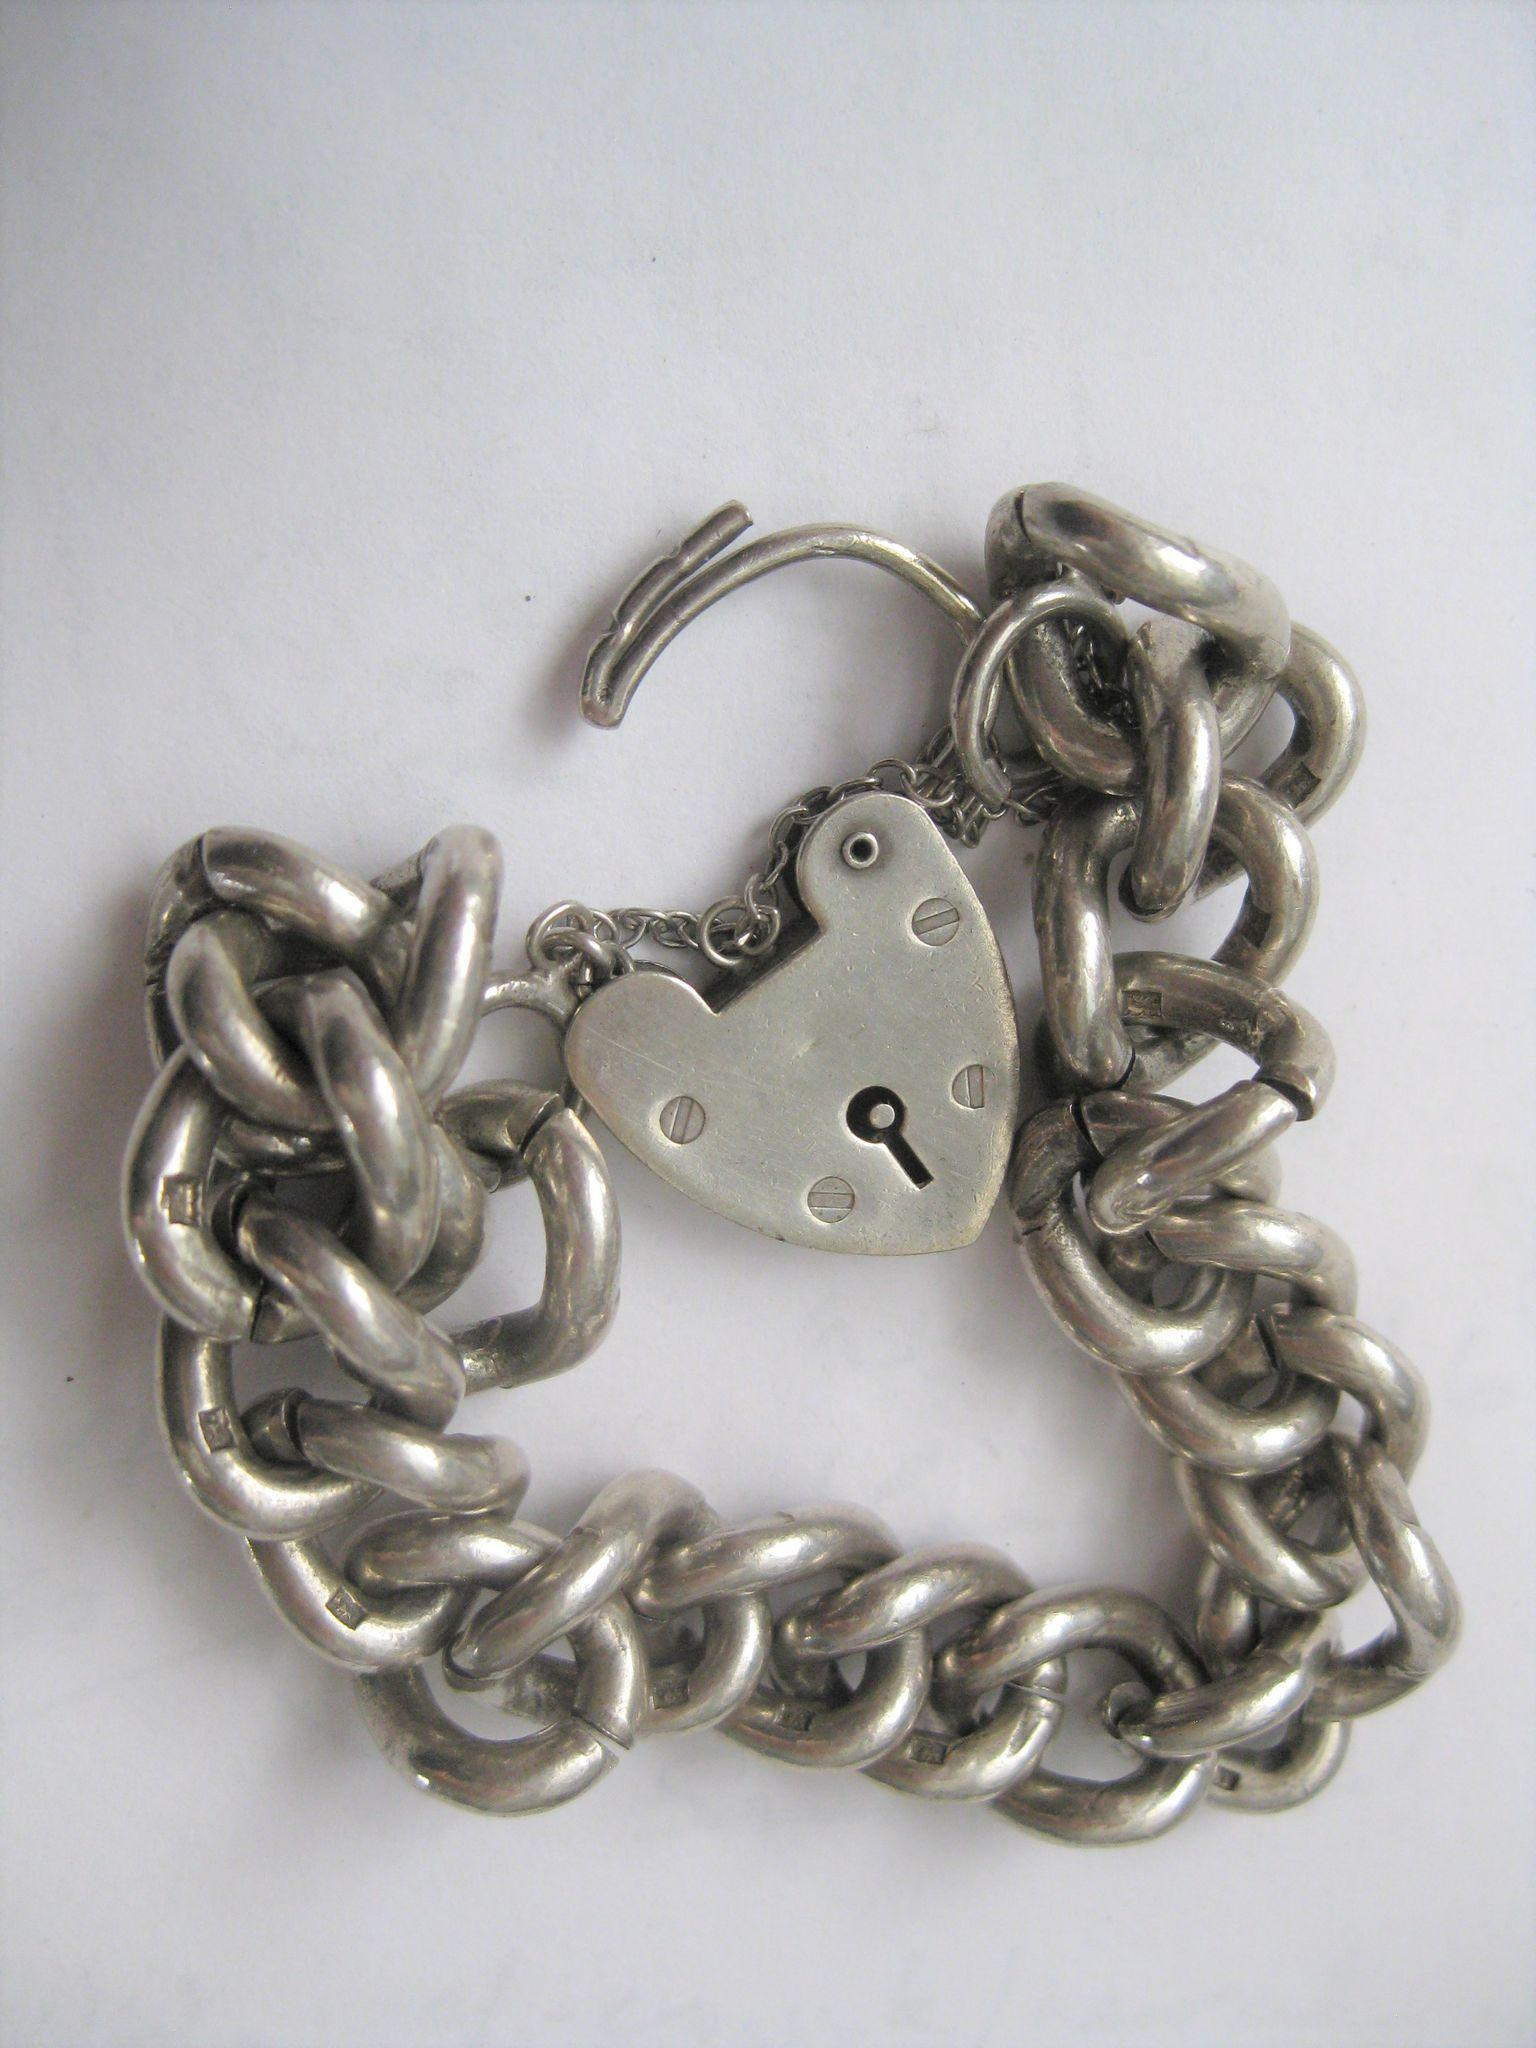 Vintage Super Heavy English Silver Bracelet w/Heart Closure